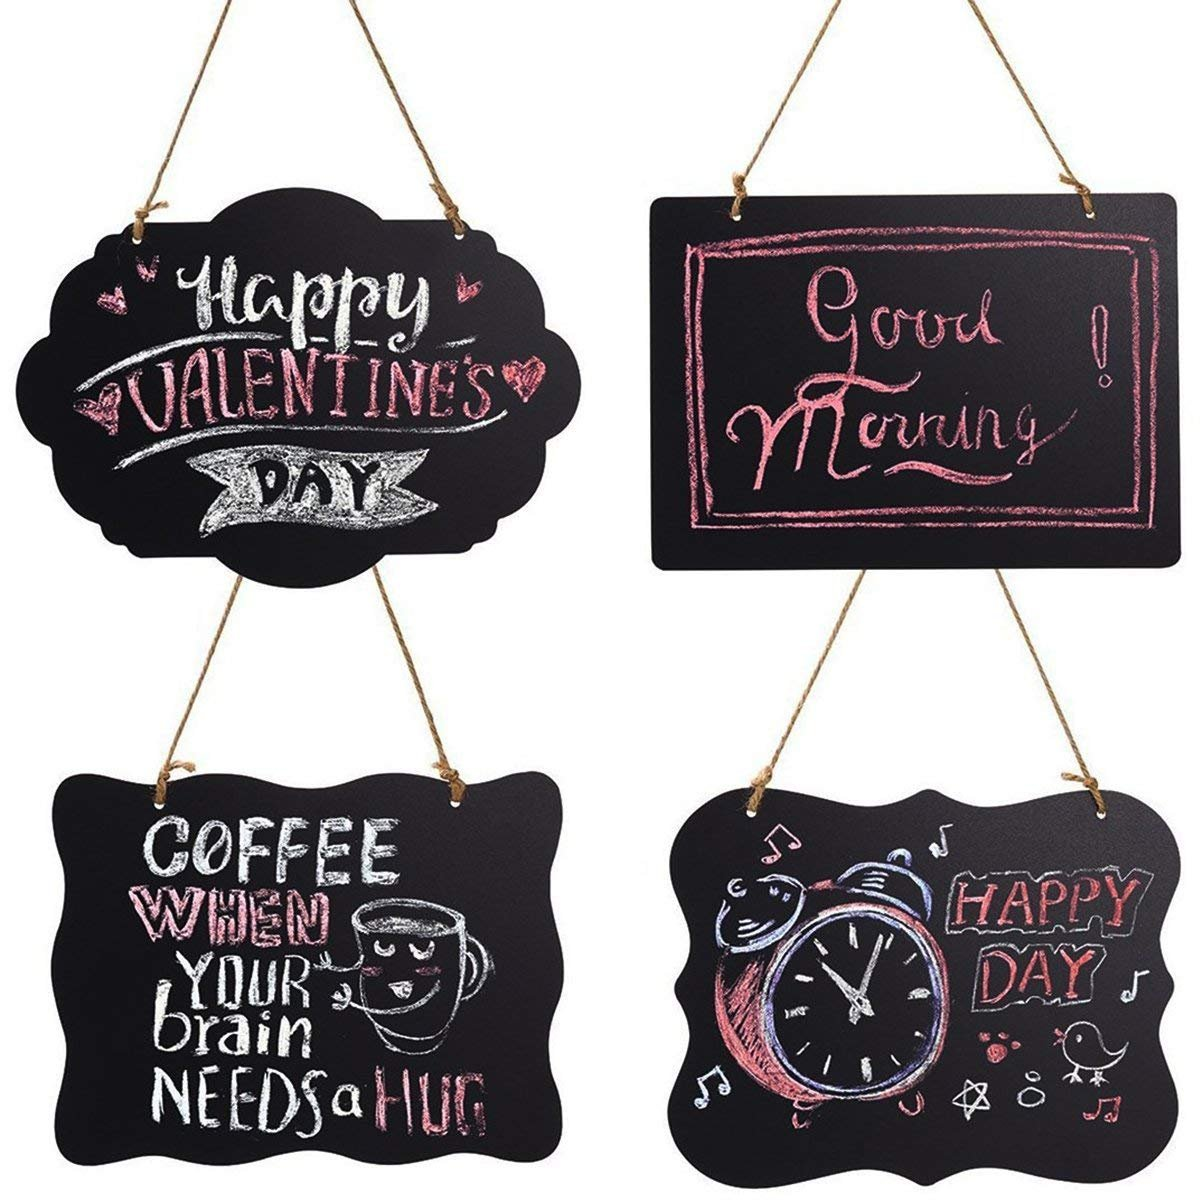 HOMEMAXS Chalkboard Sign Double-Sided Message Board with Hanging String - 2 Pack (4Pack)